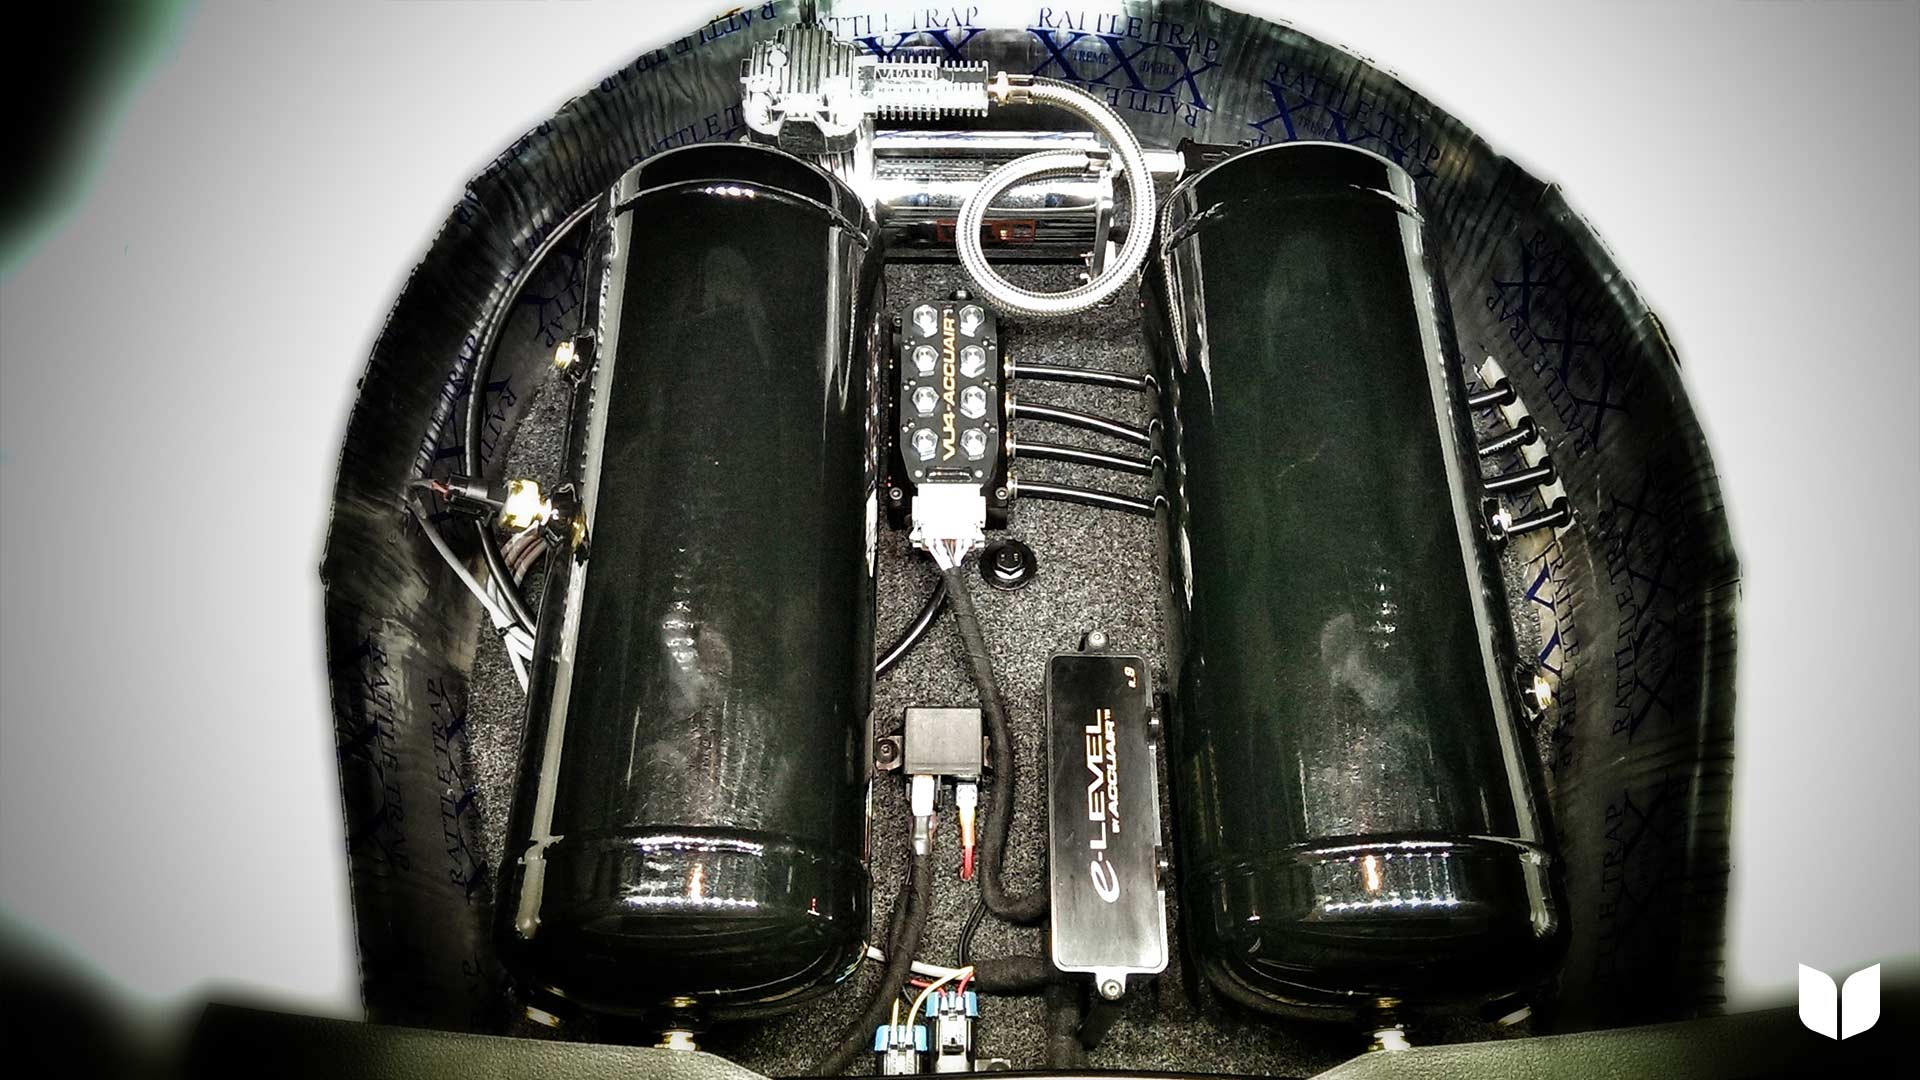 Air Management Placed in Trunk